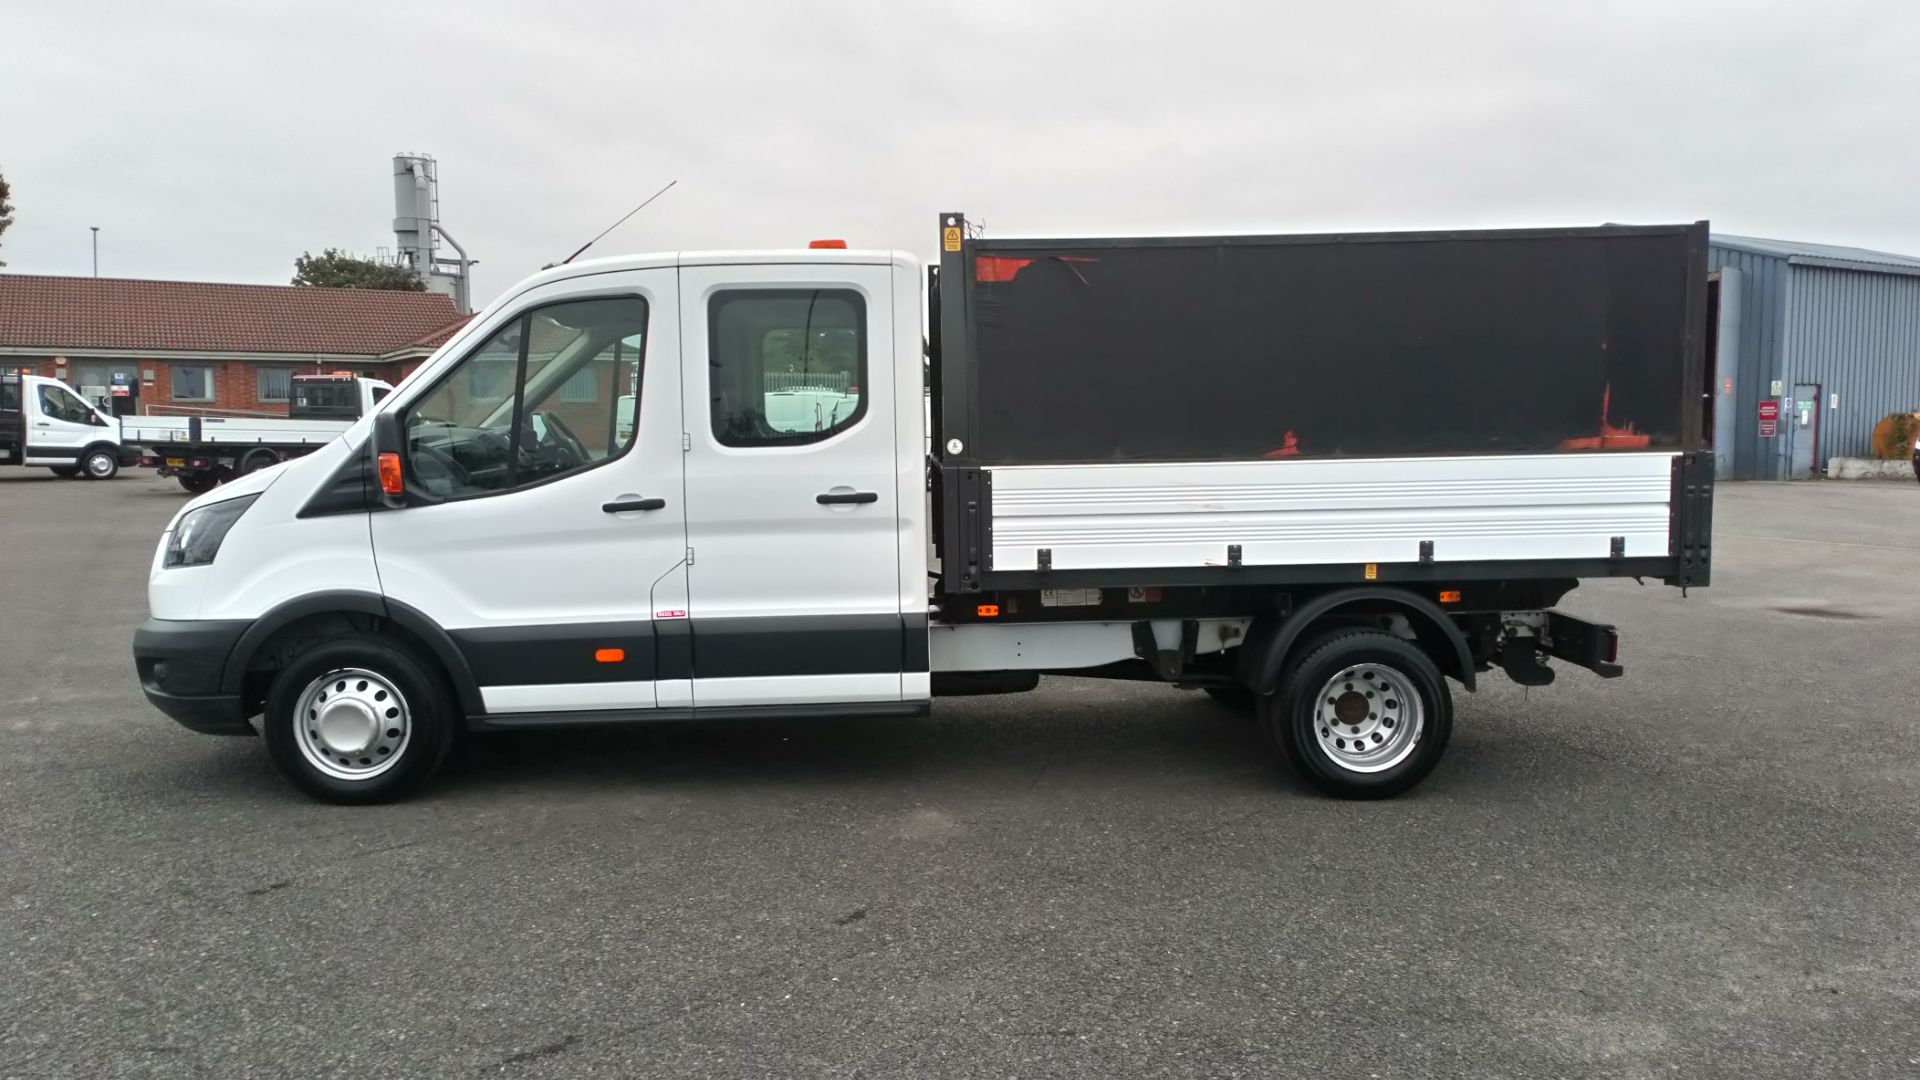 2018 Ford Transit 2.0 Tdci 130Ps H2 Double Cab Tipper (BL18UYX) Image 4